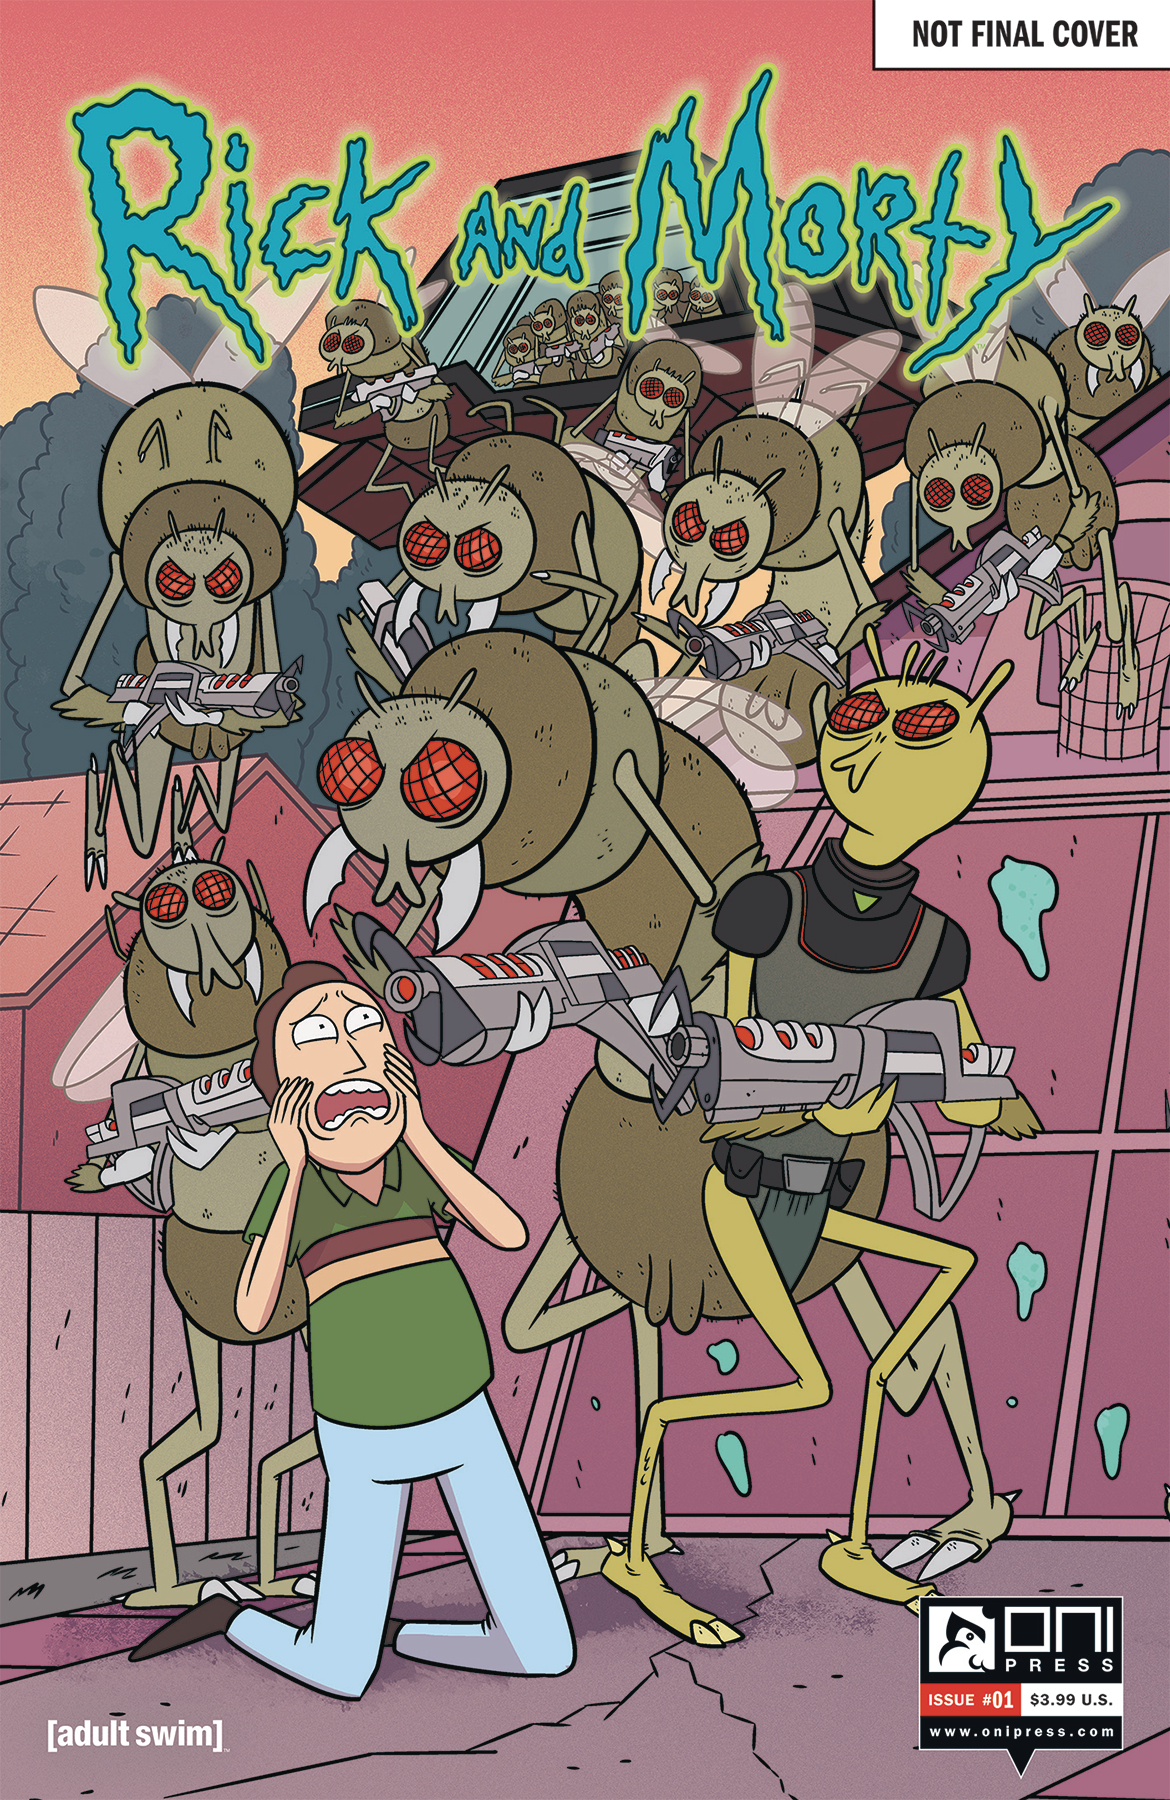 RICK & MORTY #1 50 ISSUES SPECIAL VAR